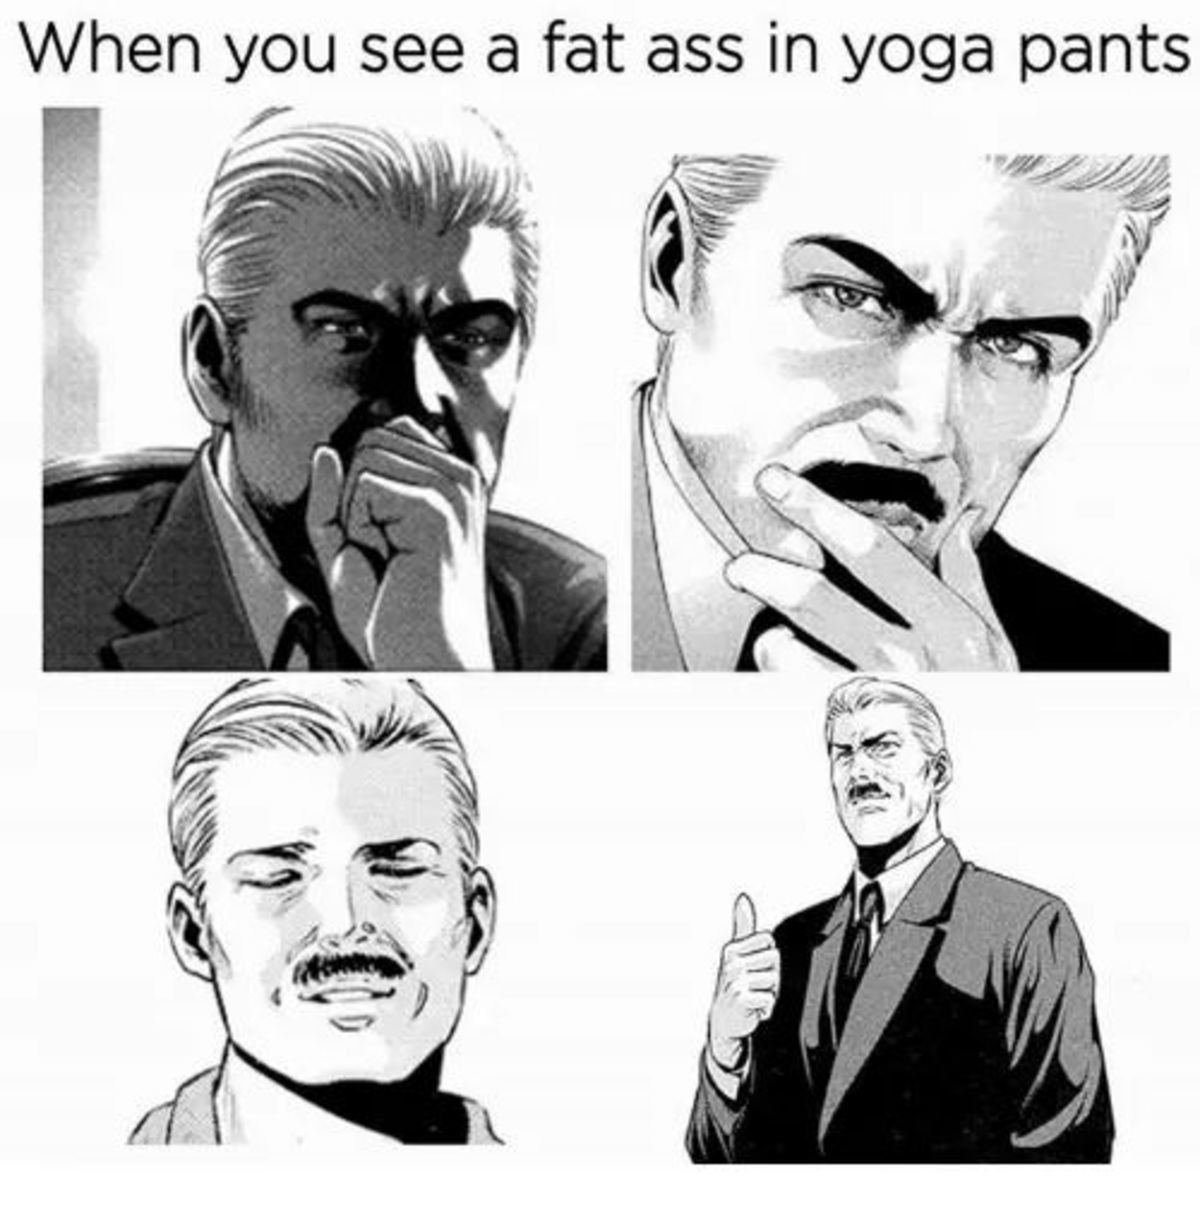 It's Yoga Pants Season. join list: AssMen (2878 subs)Mention History. stert l/ tyd see tit fat ass in I/ CKY?' t:. jan selter